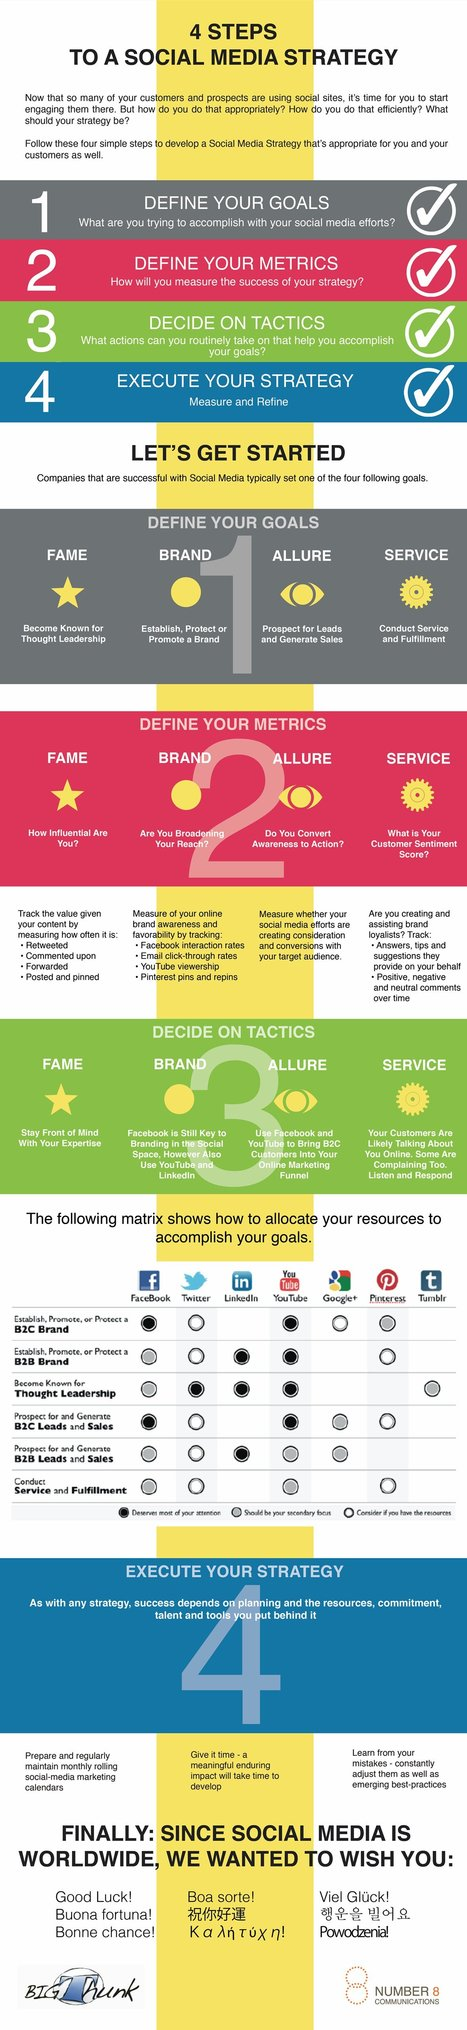 Four Steps to a Social Media Strategy [Infographic] | Time to Learn | Scoop.it